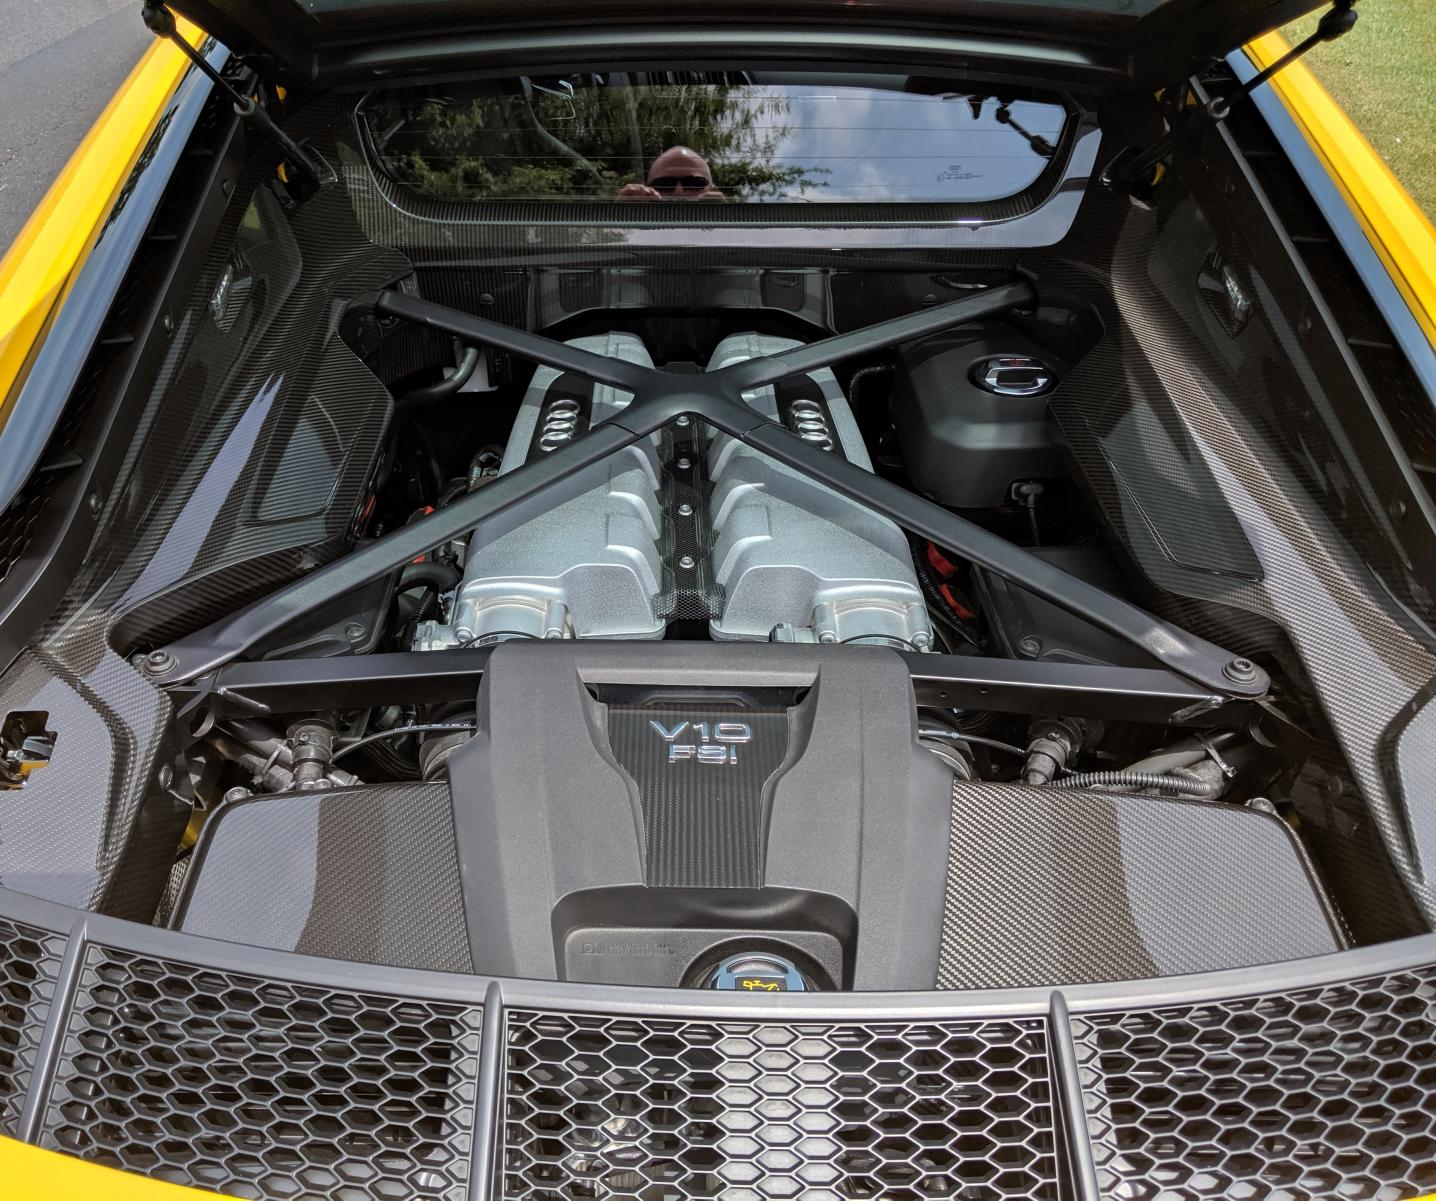 How To Take Off Carbon Engine Bay Trim-img_20190705_115842.jpg